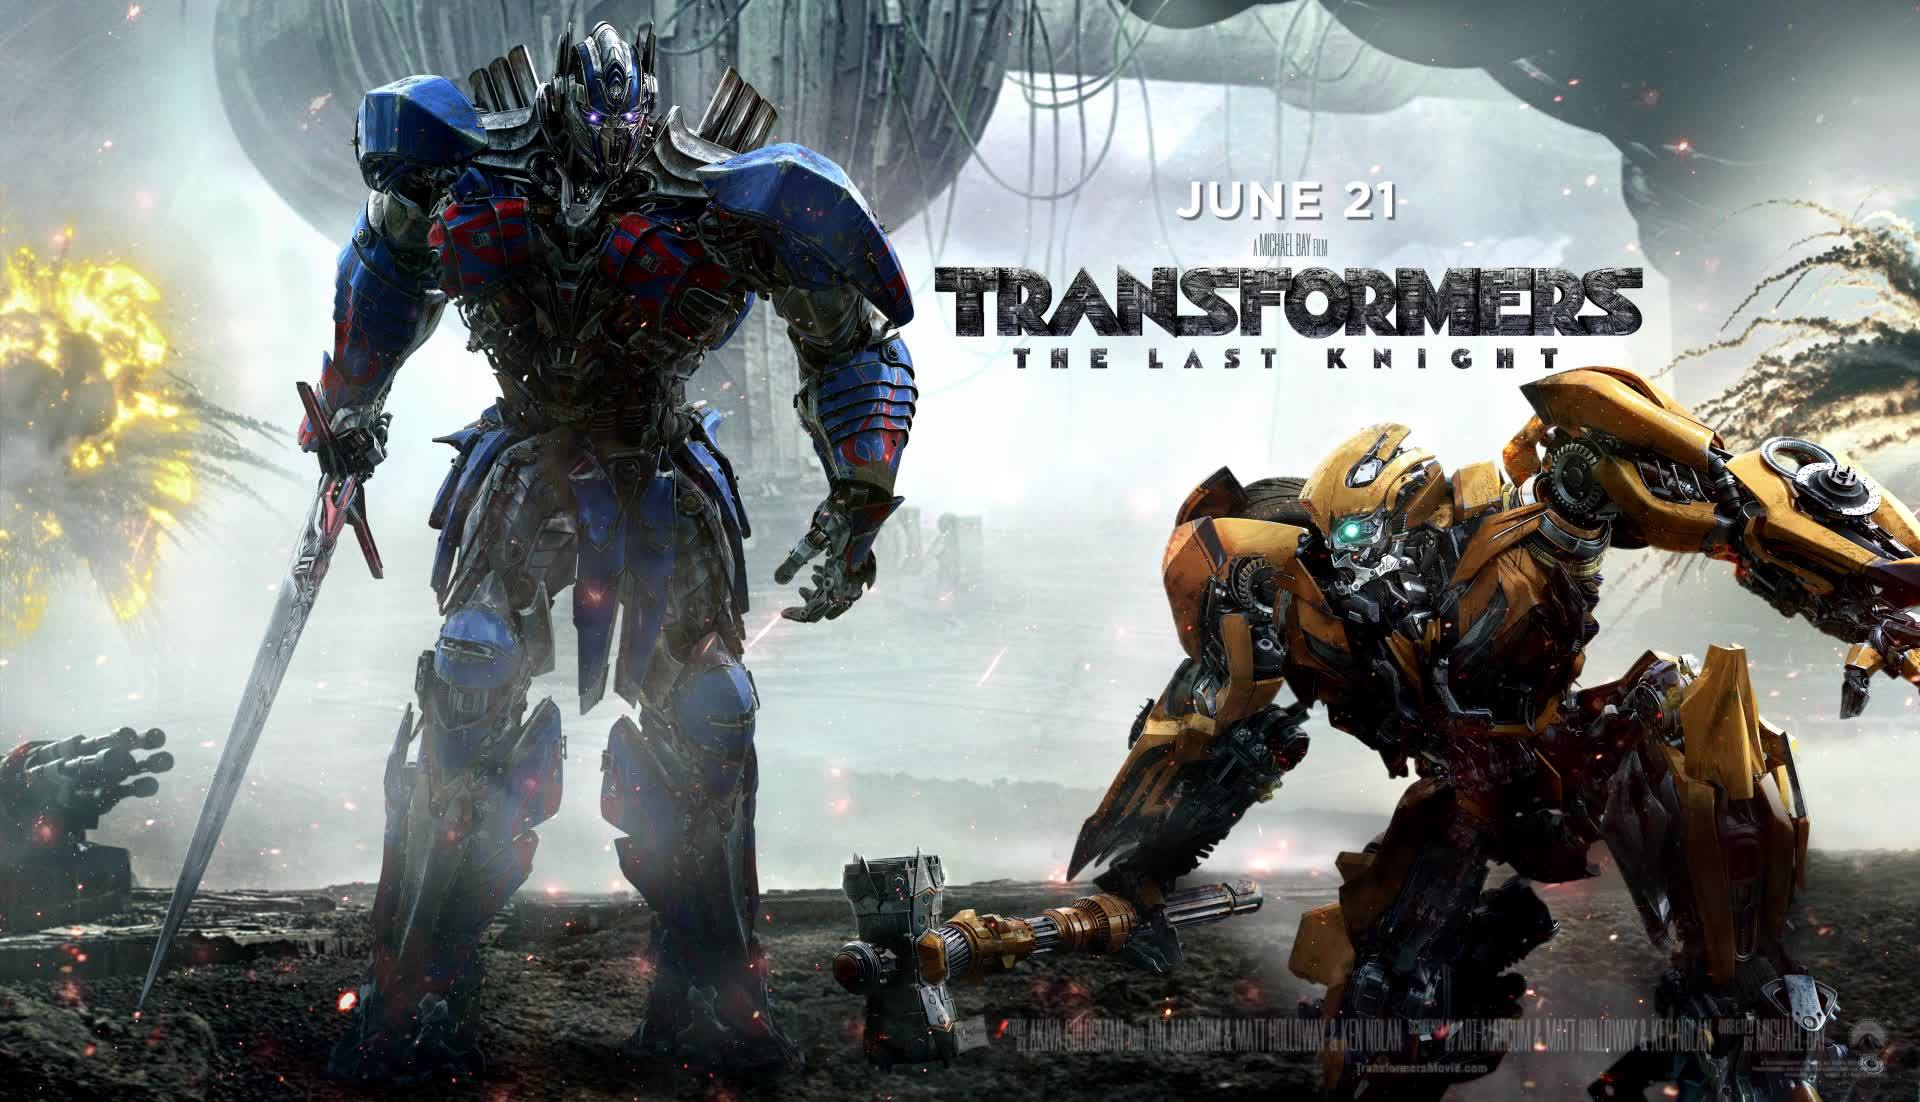 prescreening of new transformers movie coming to select